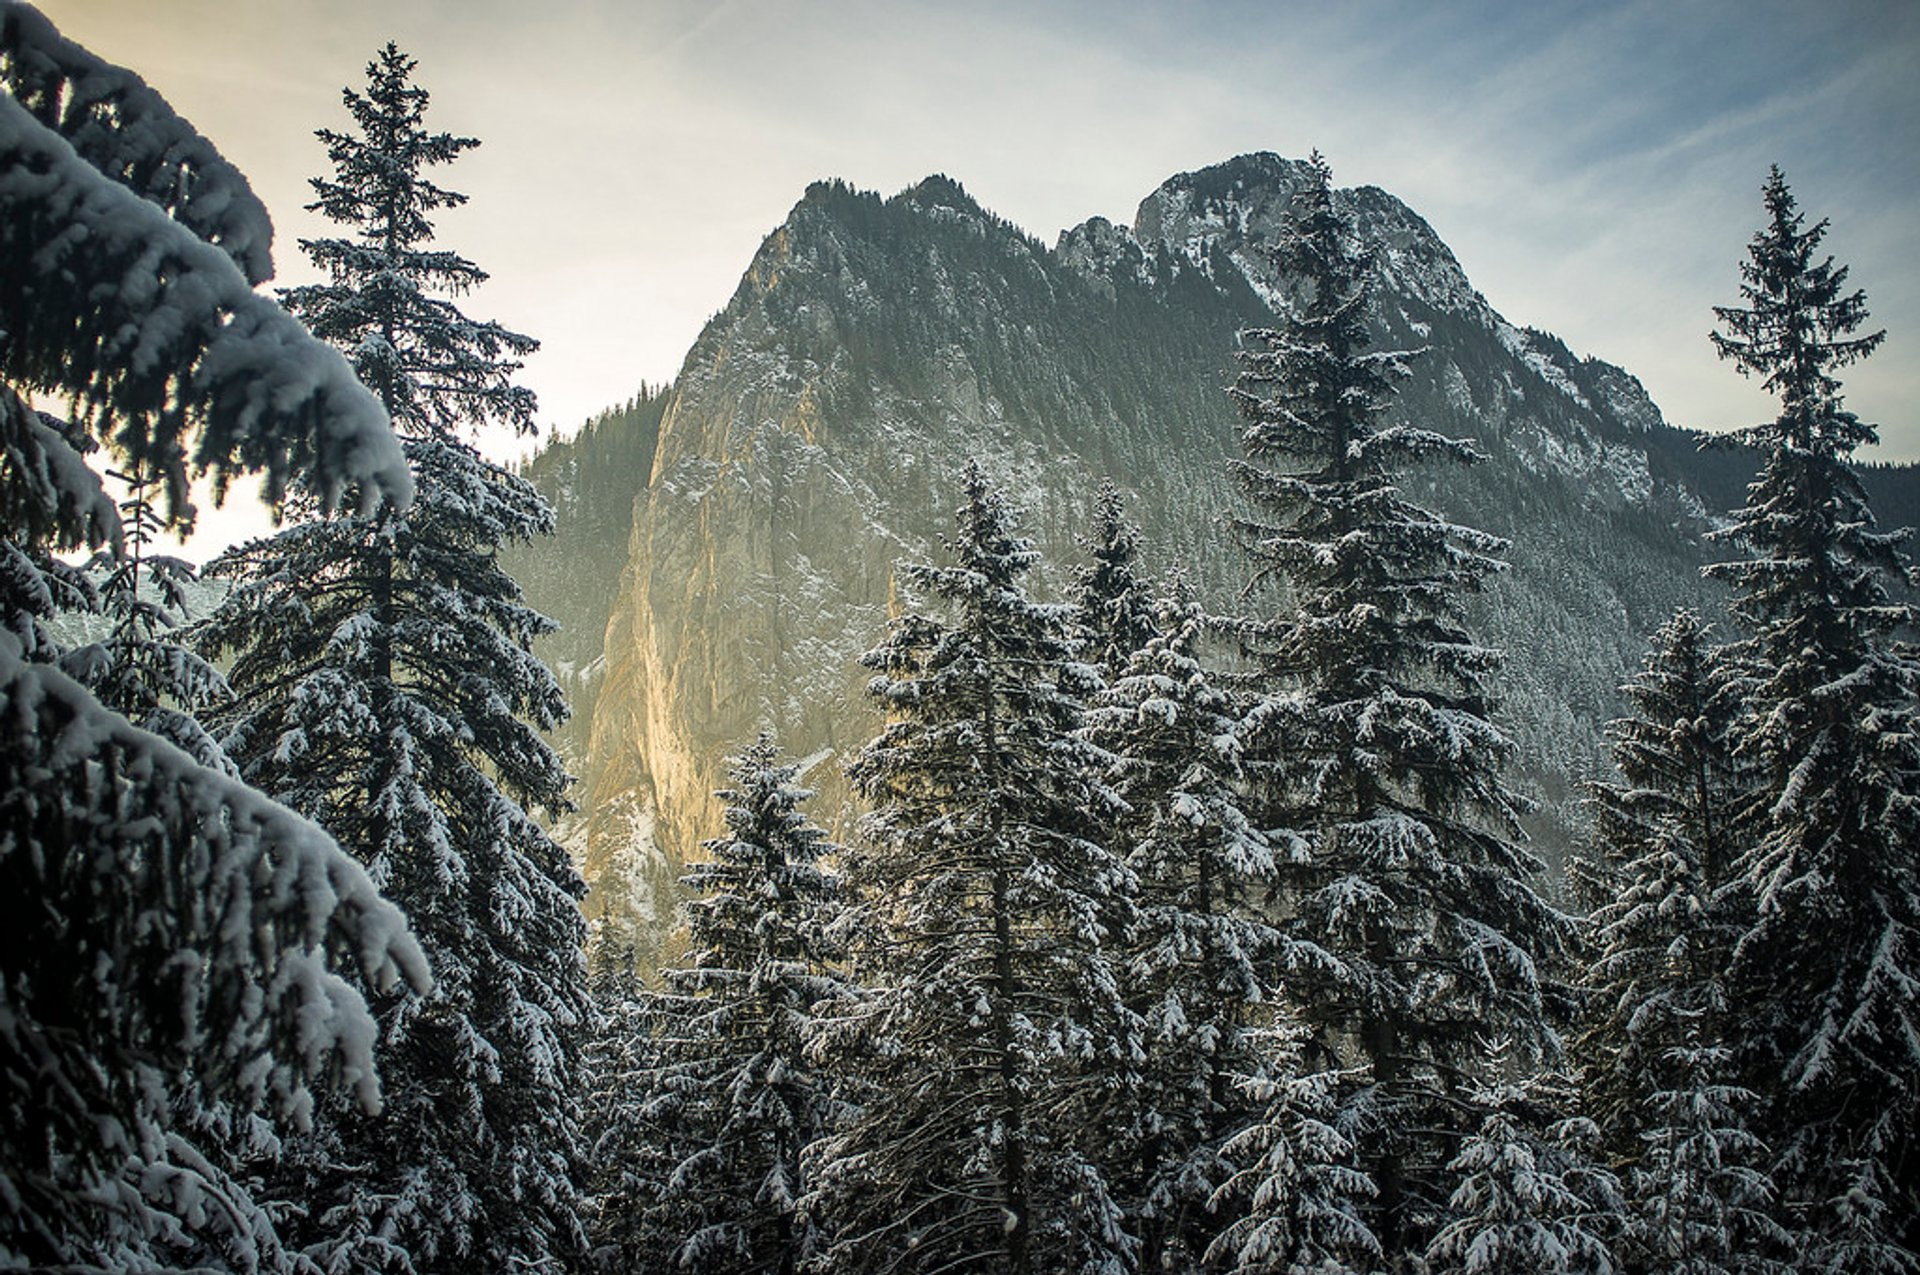 Stunning views of the Tatra Mountains 2020